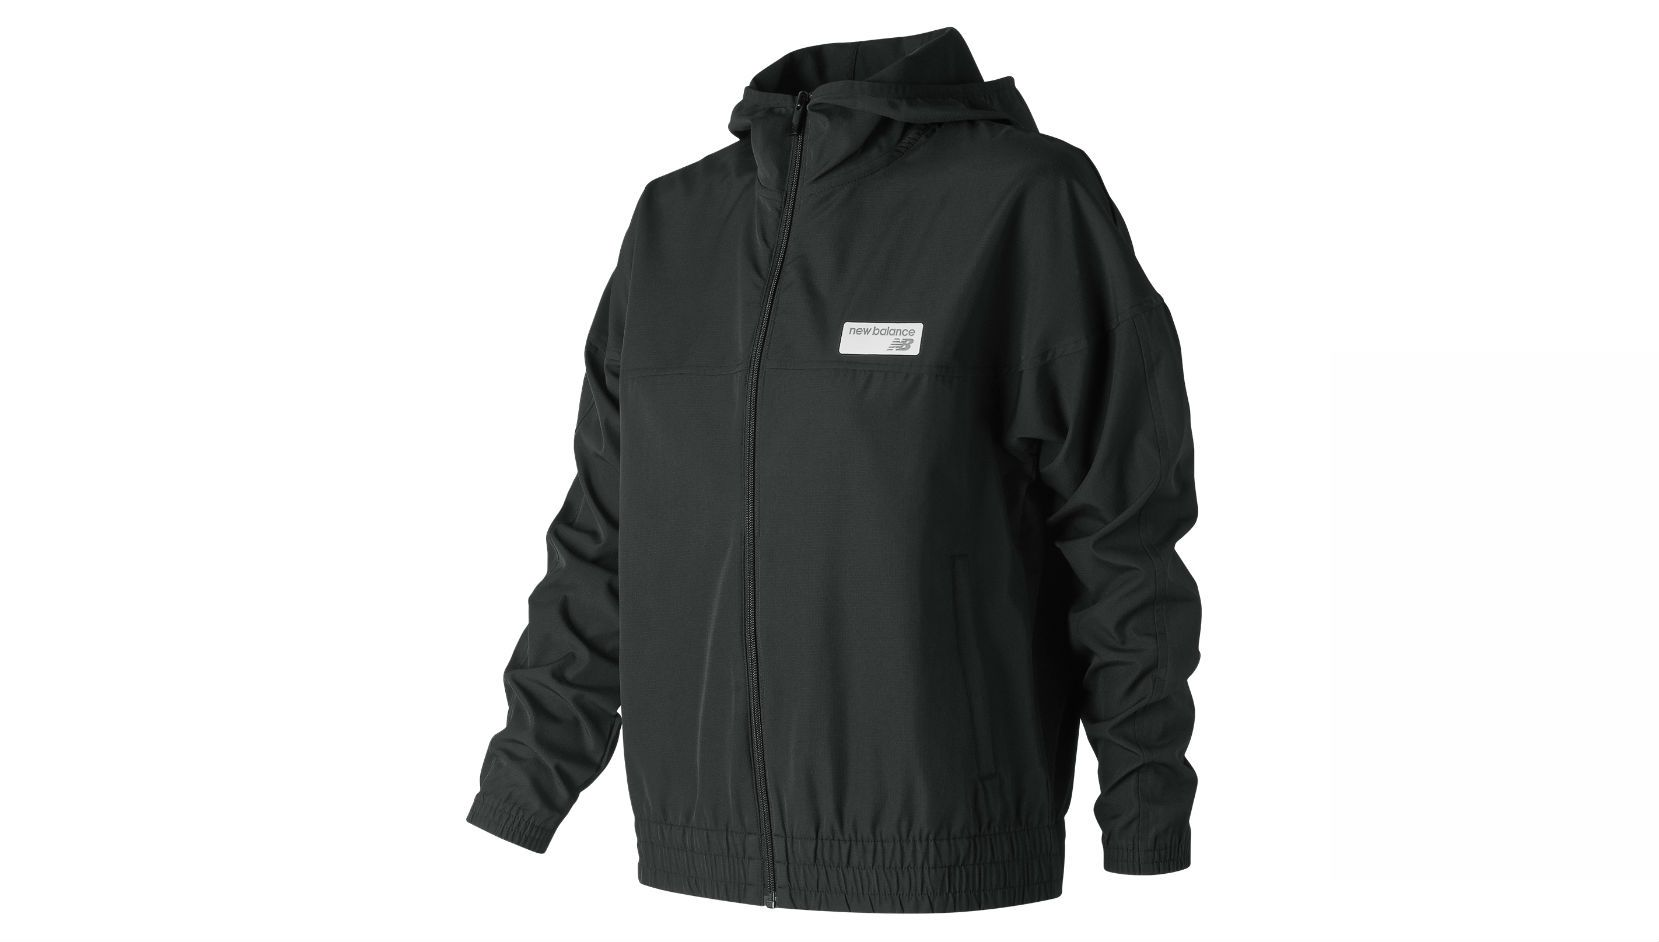 NB ATHLETICS WINDBREAKER nb athletics windbreaker pullover